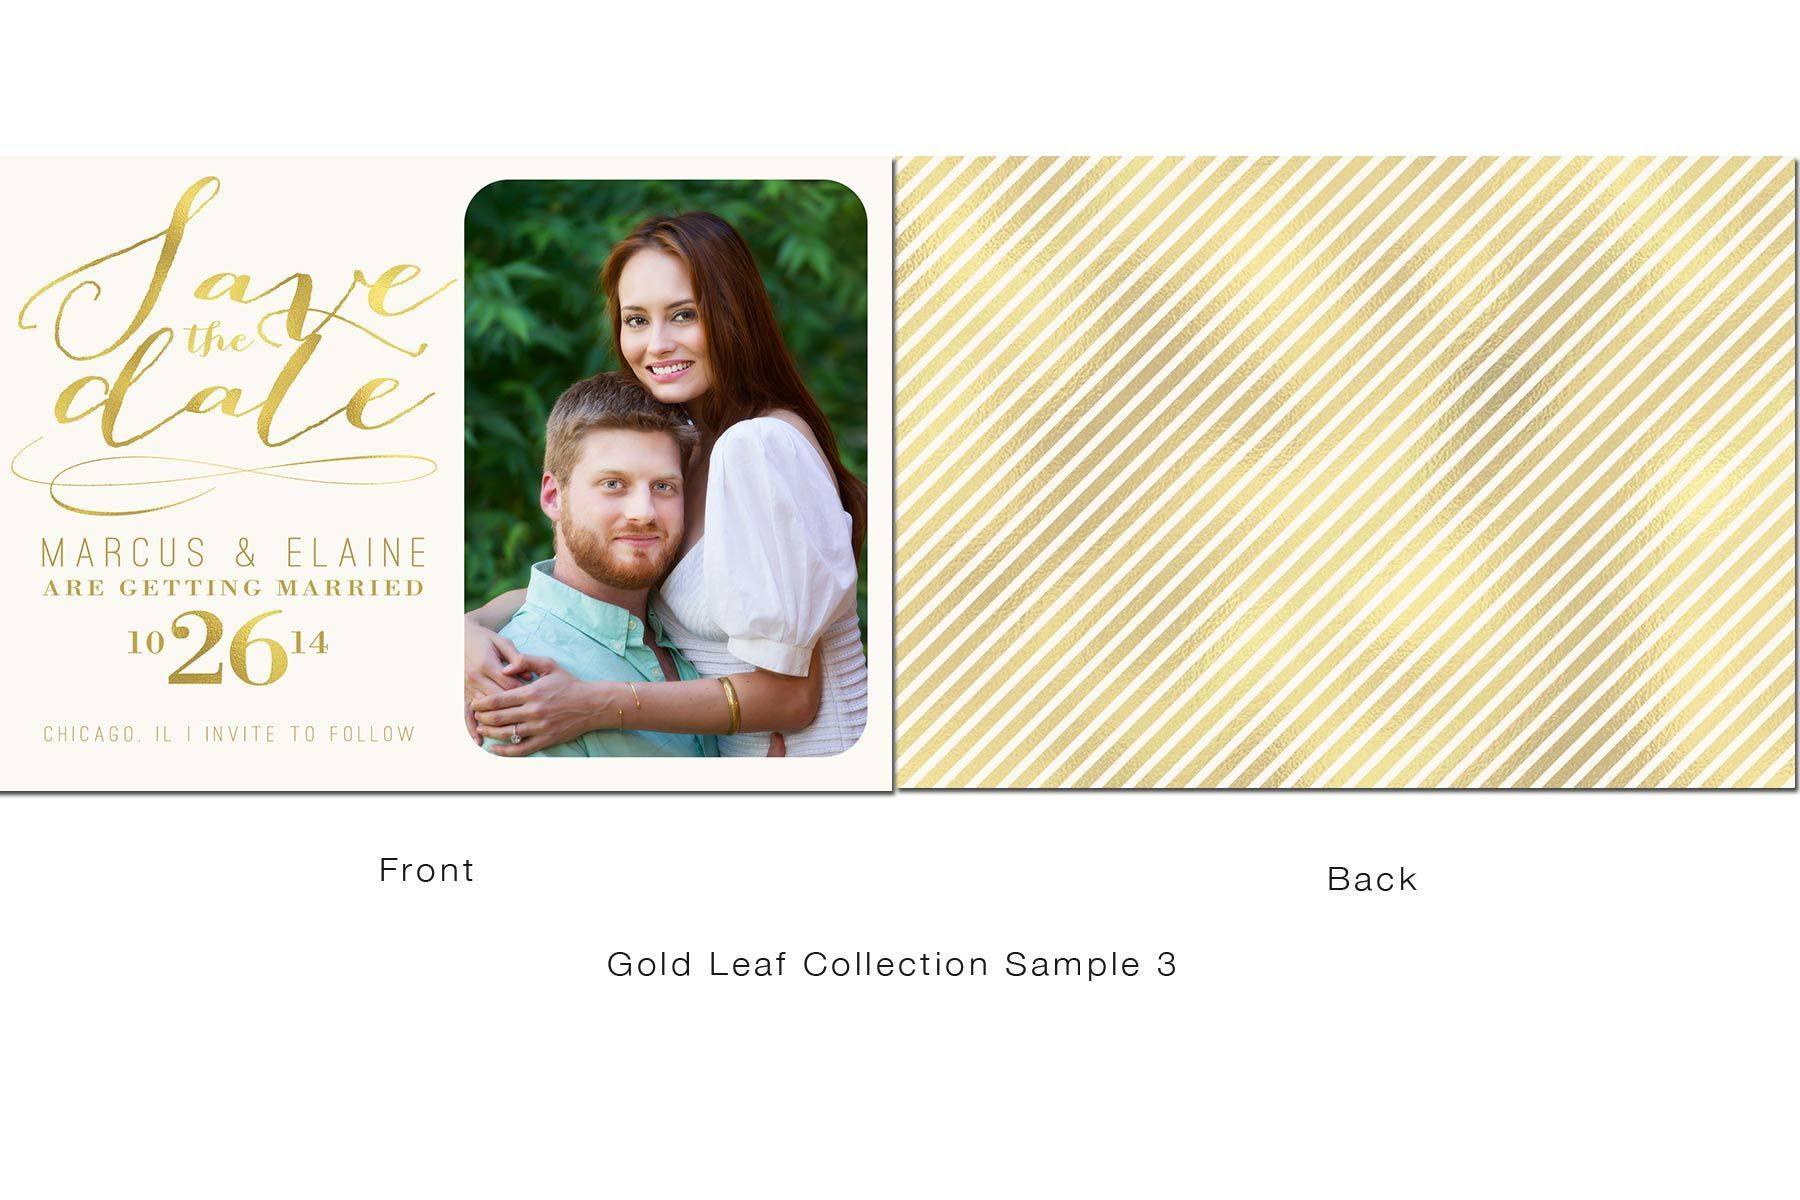 1gold_leaf_save_the_dates_sample_3.jpg